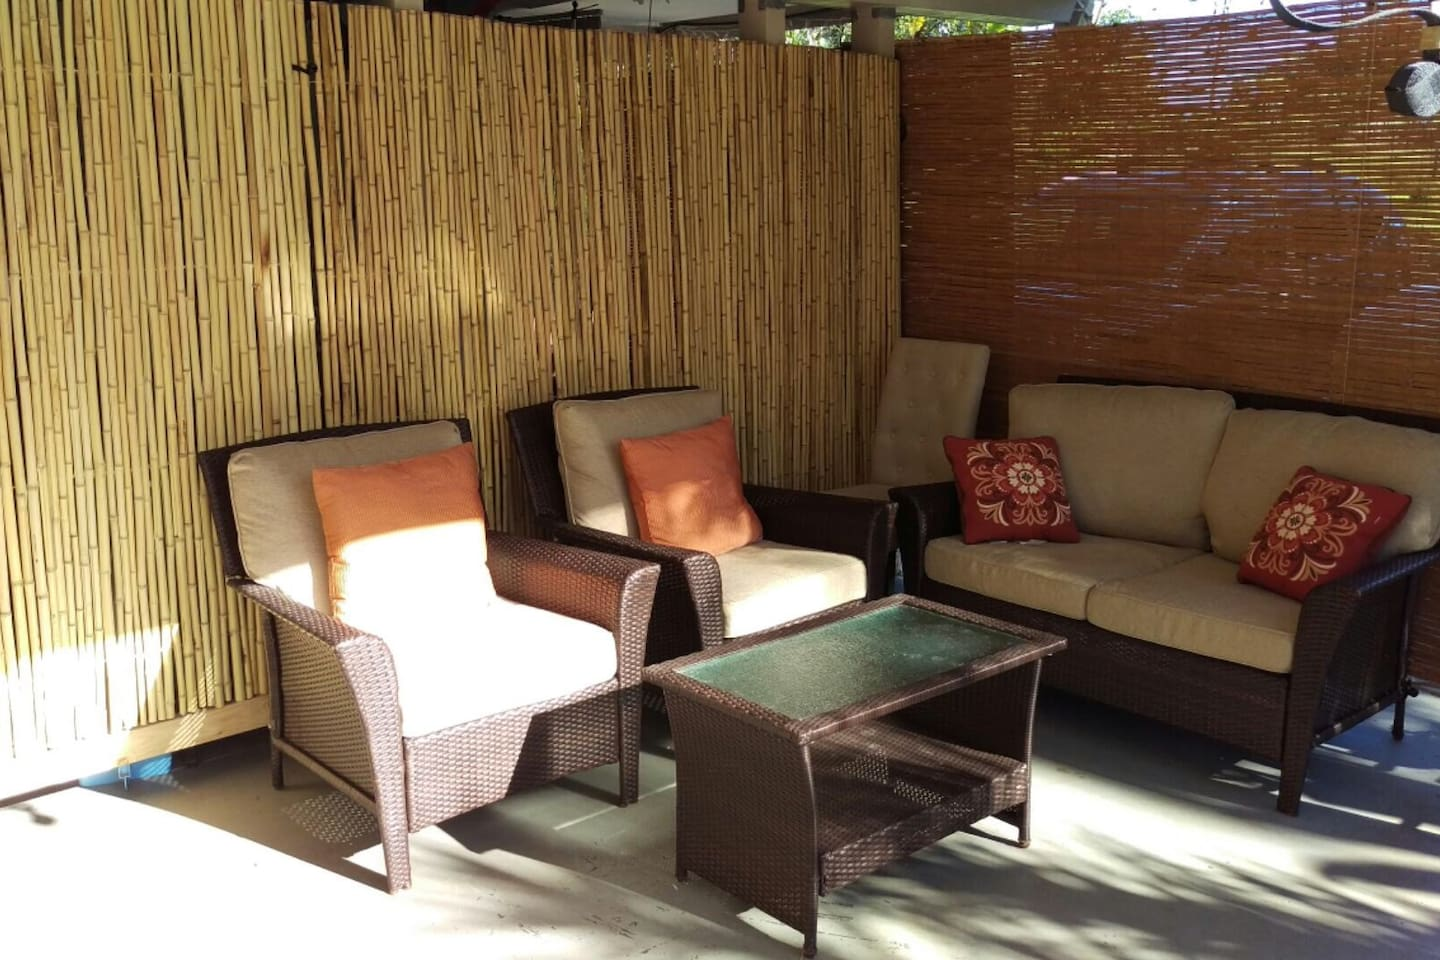 Outdoor covered patio is a comfy place to kick back and enjoy the view